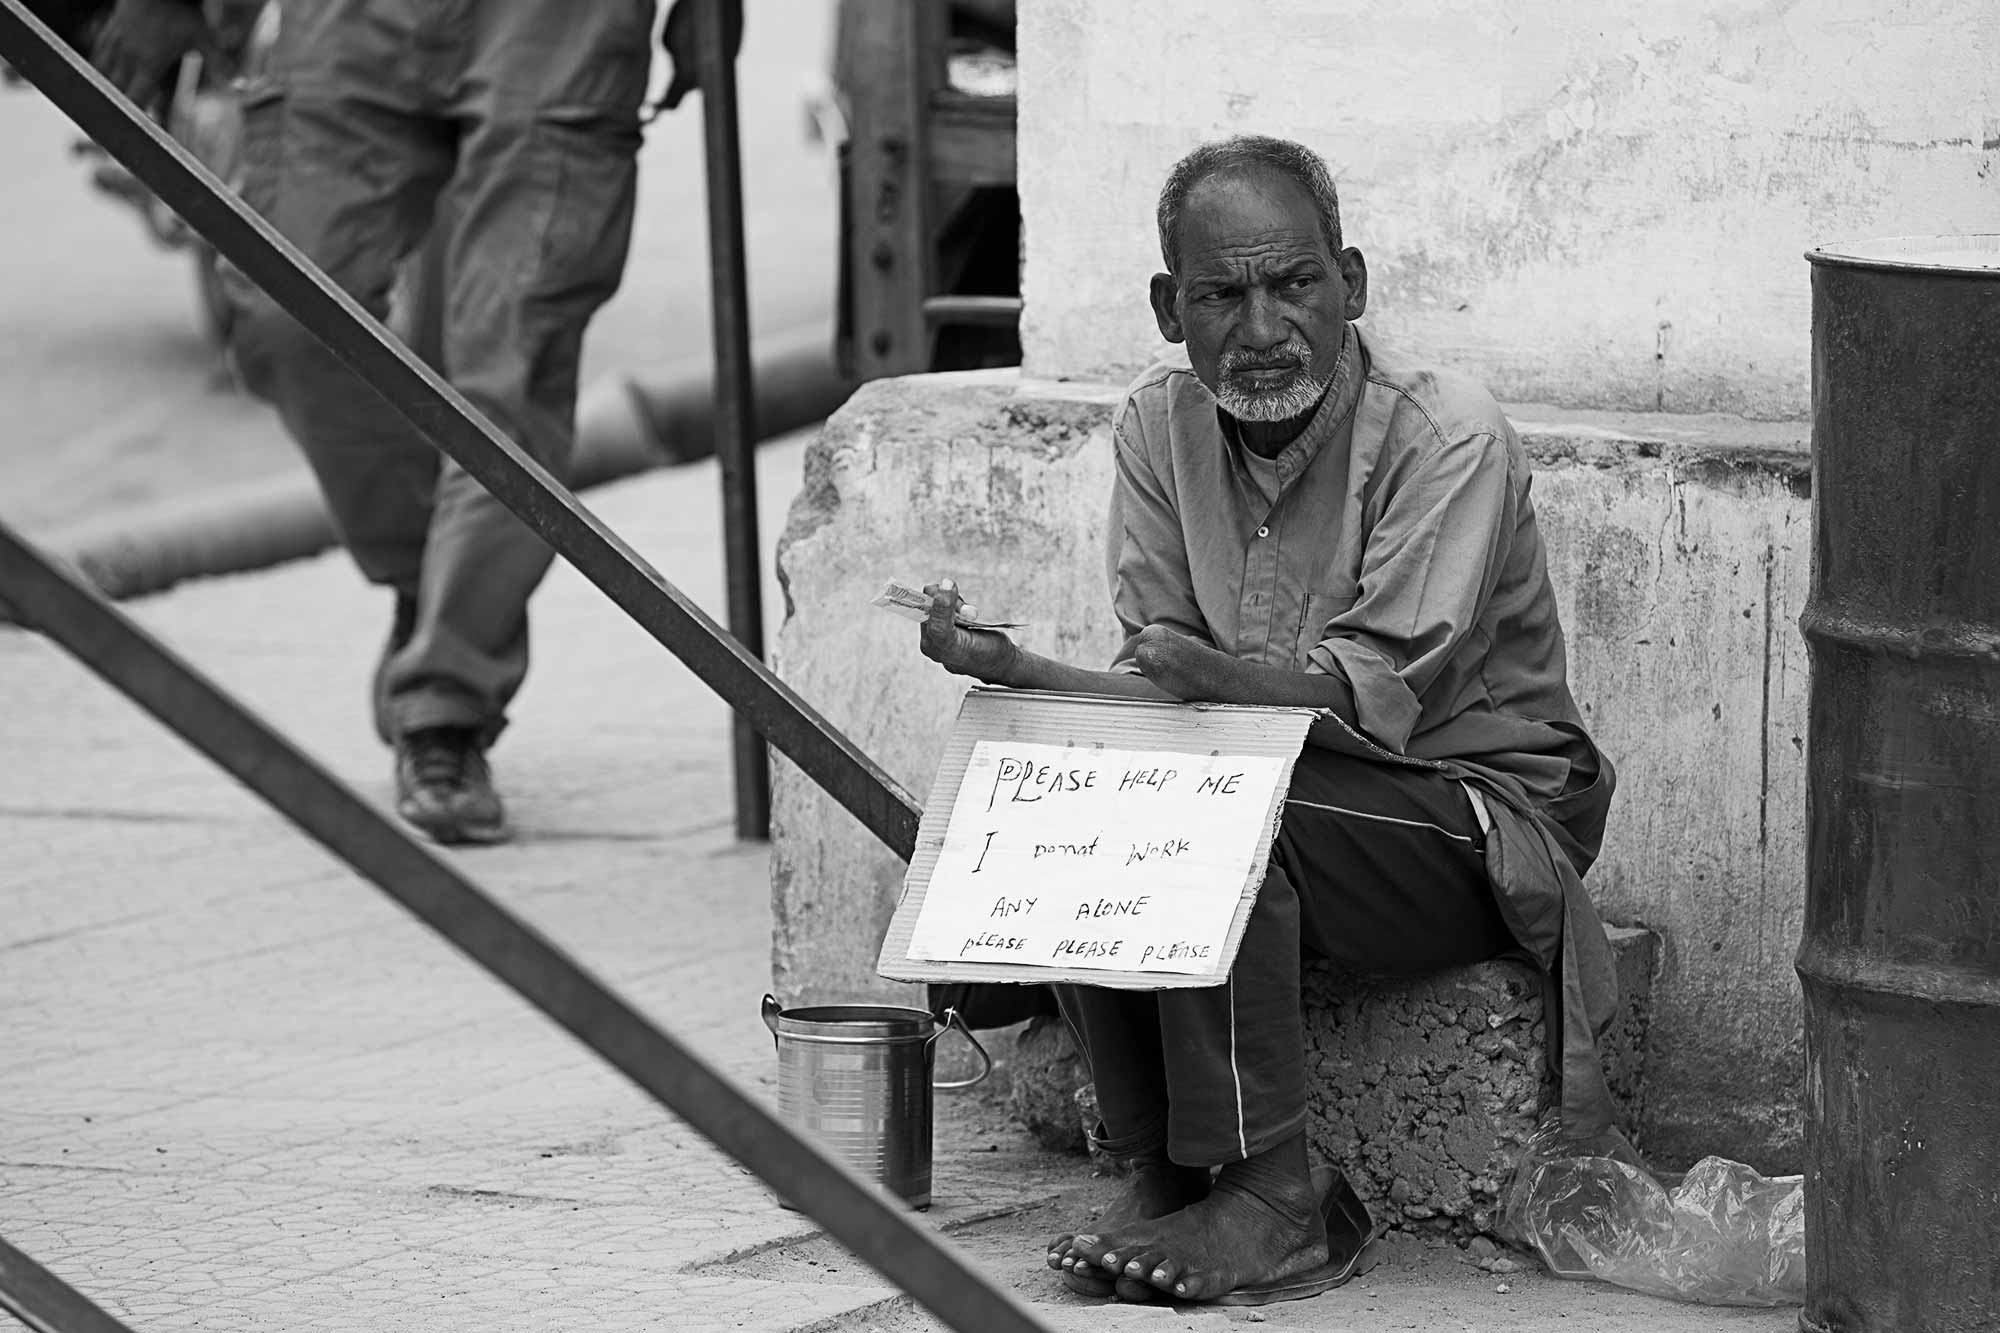 disfigured-man-visakhapatnam-india